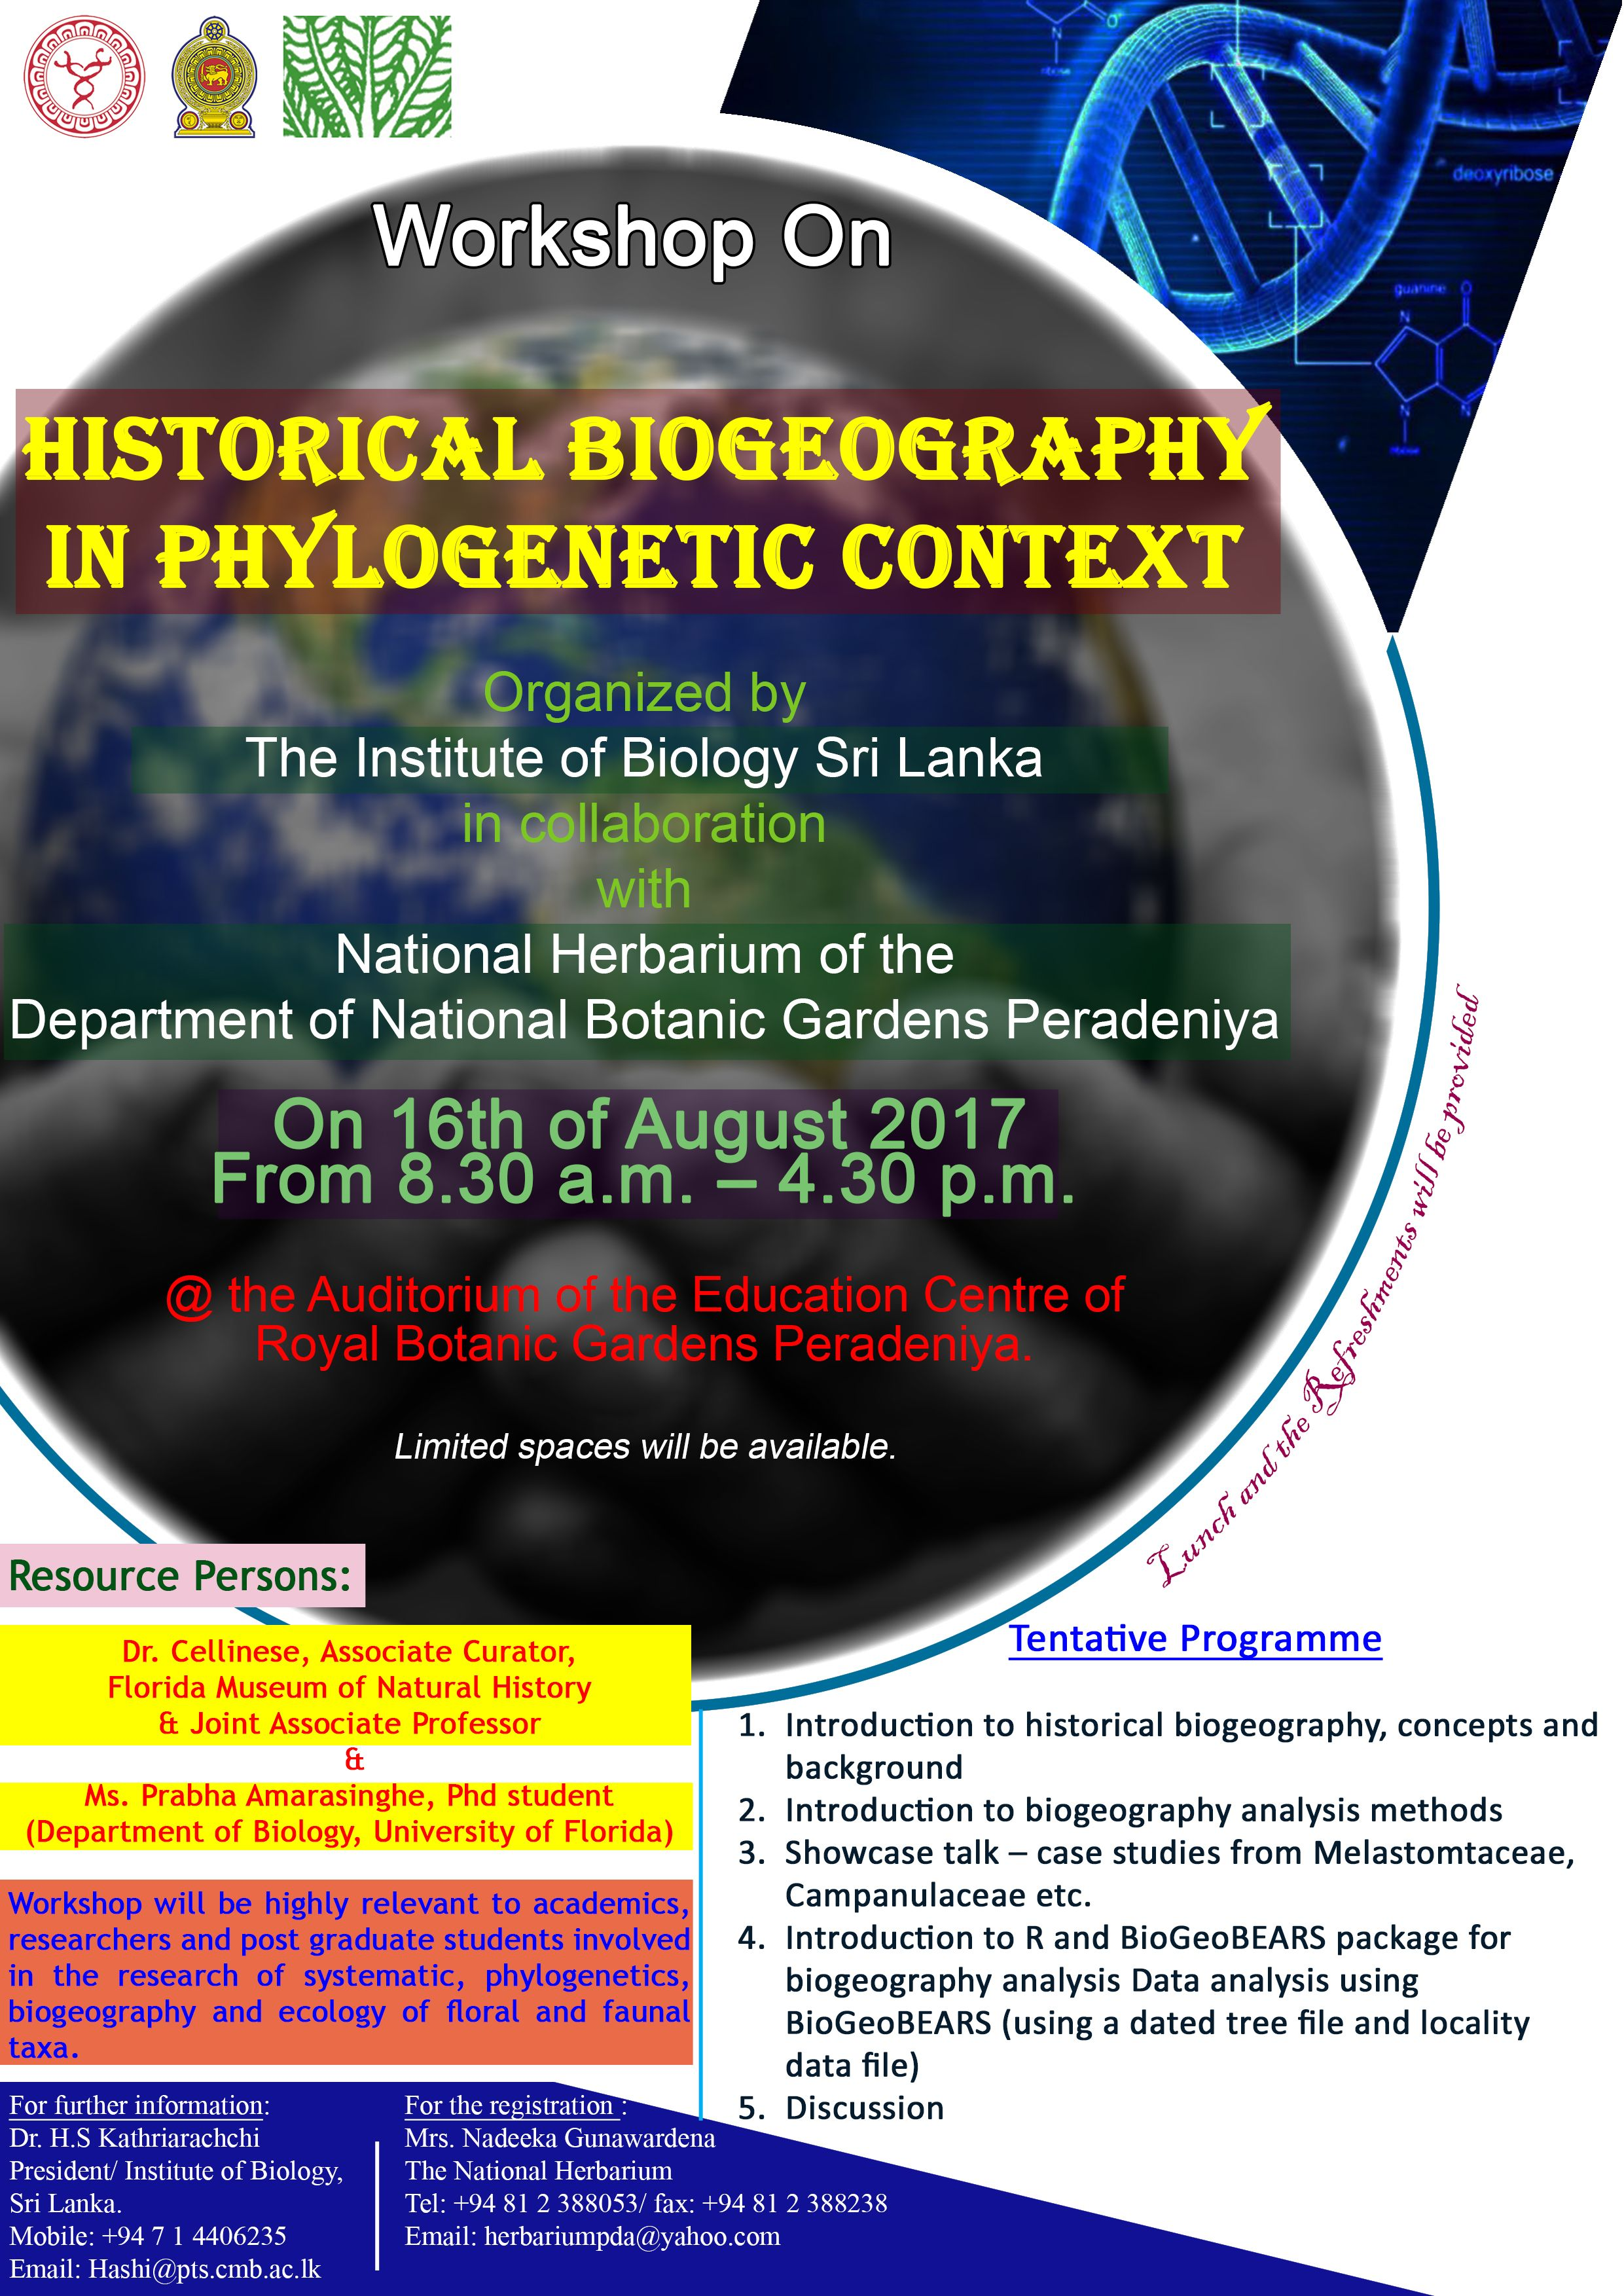 IOB_Biogeography Workshop_2017_Flyer